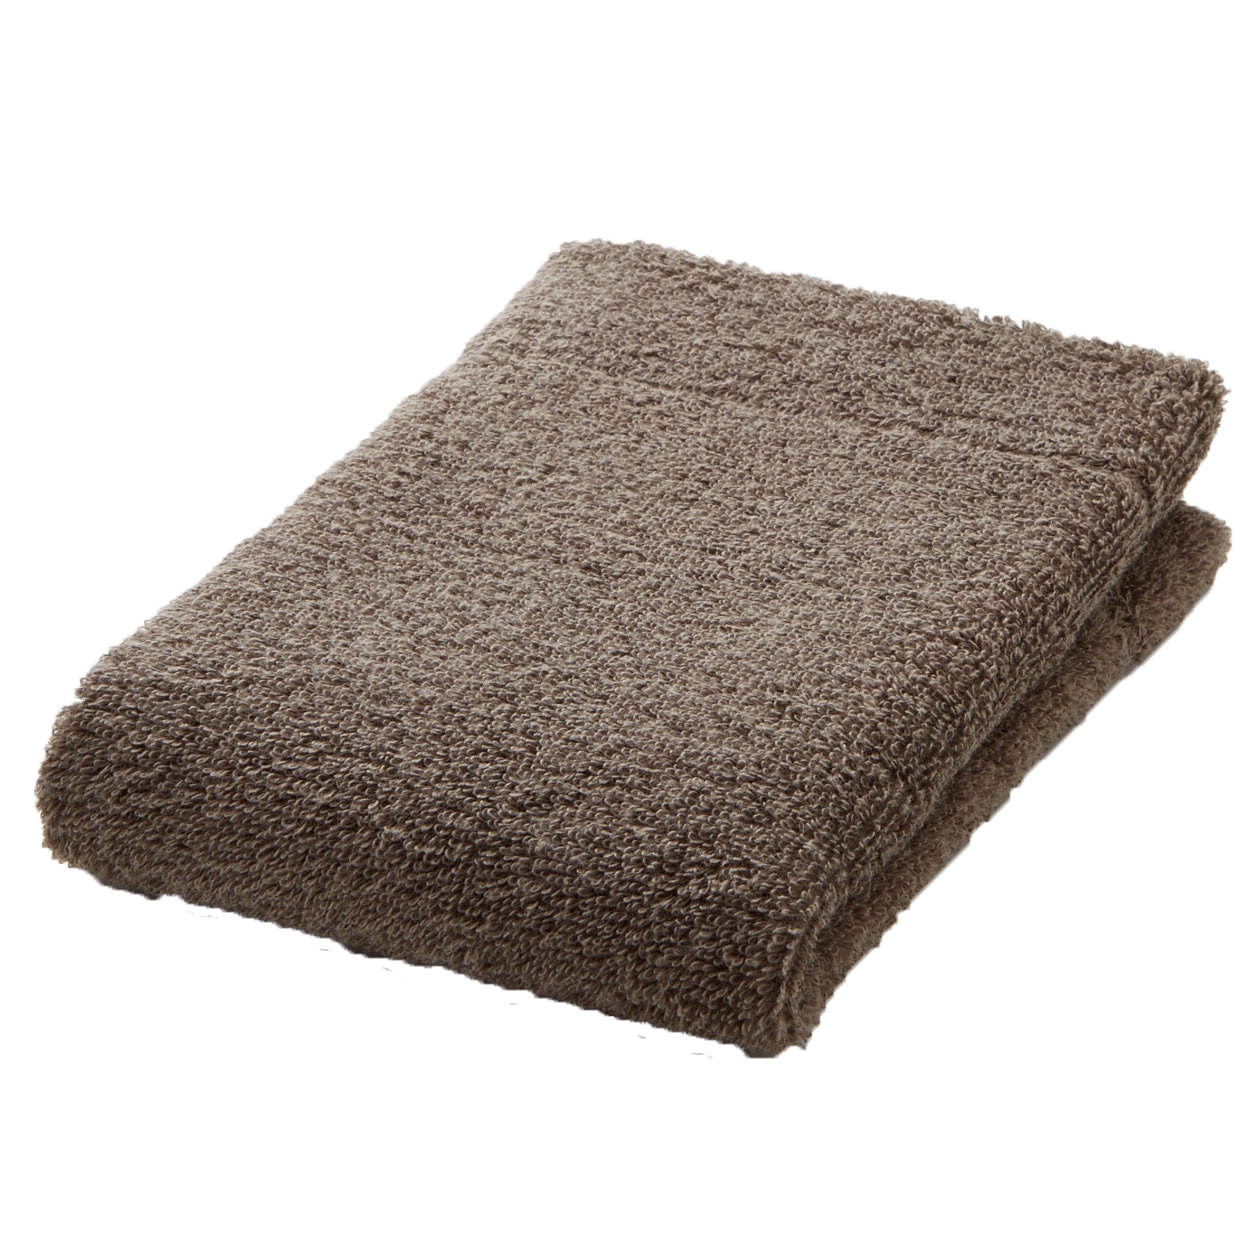 brown thin Hand towel